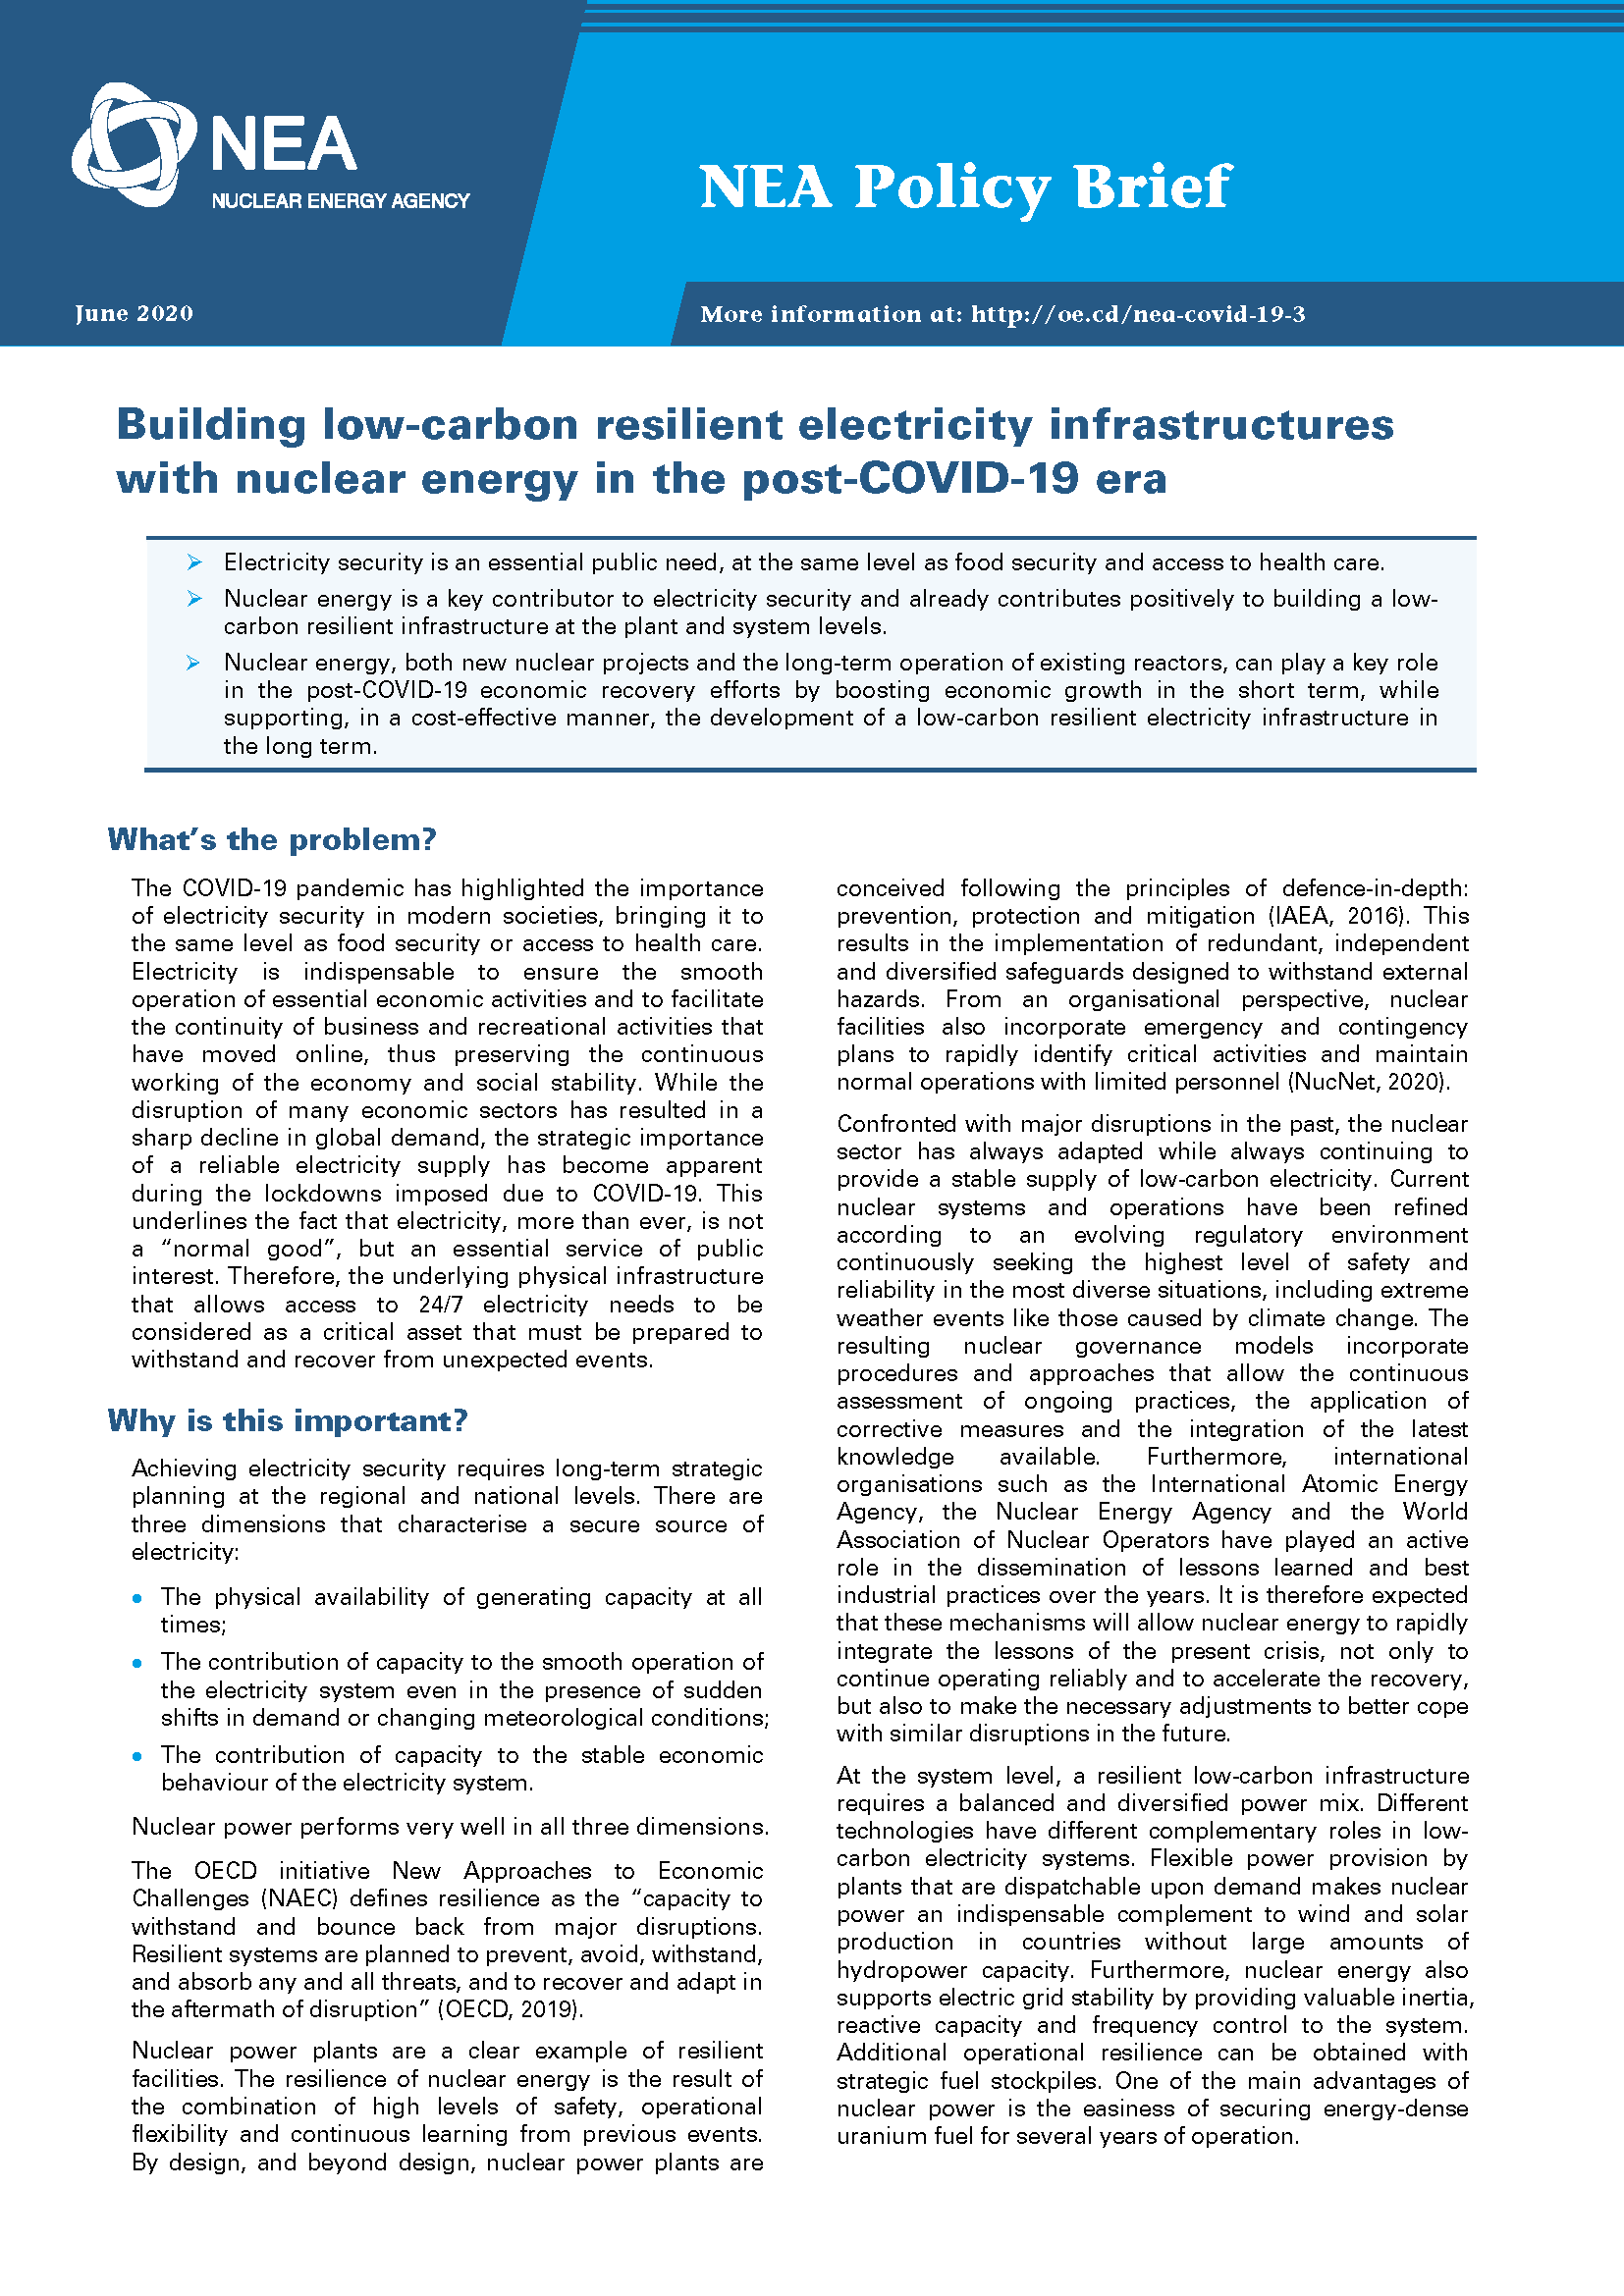 Building low-carbon resilient electricity infrastructures